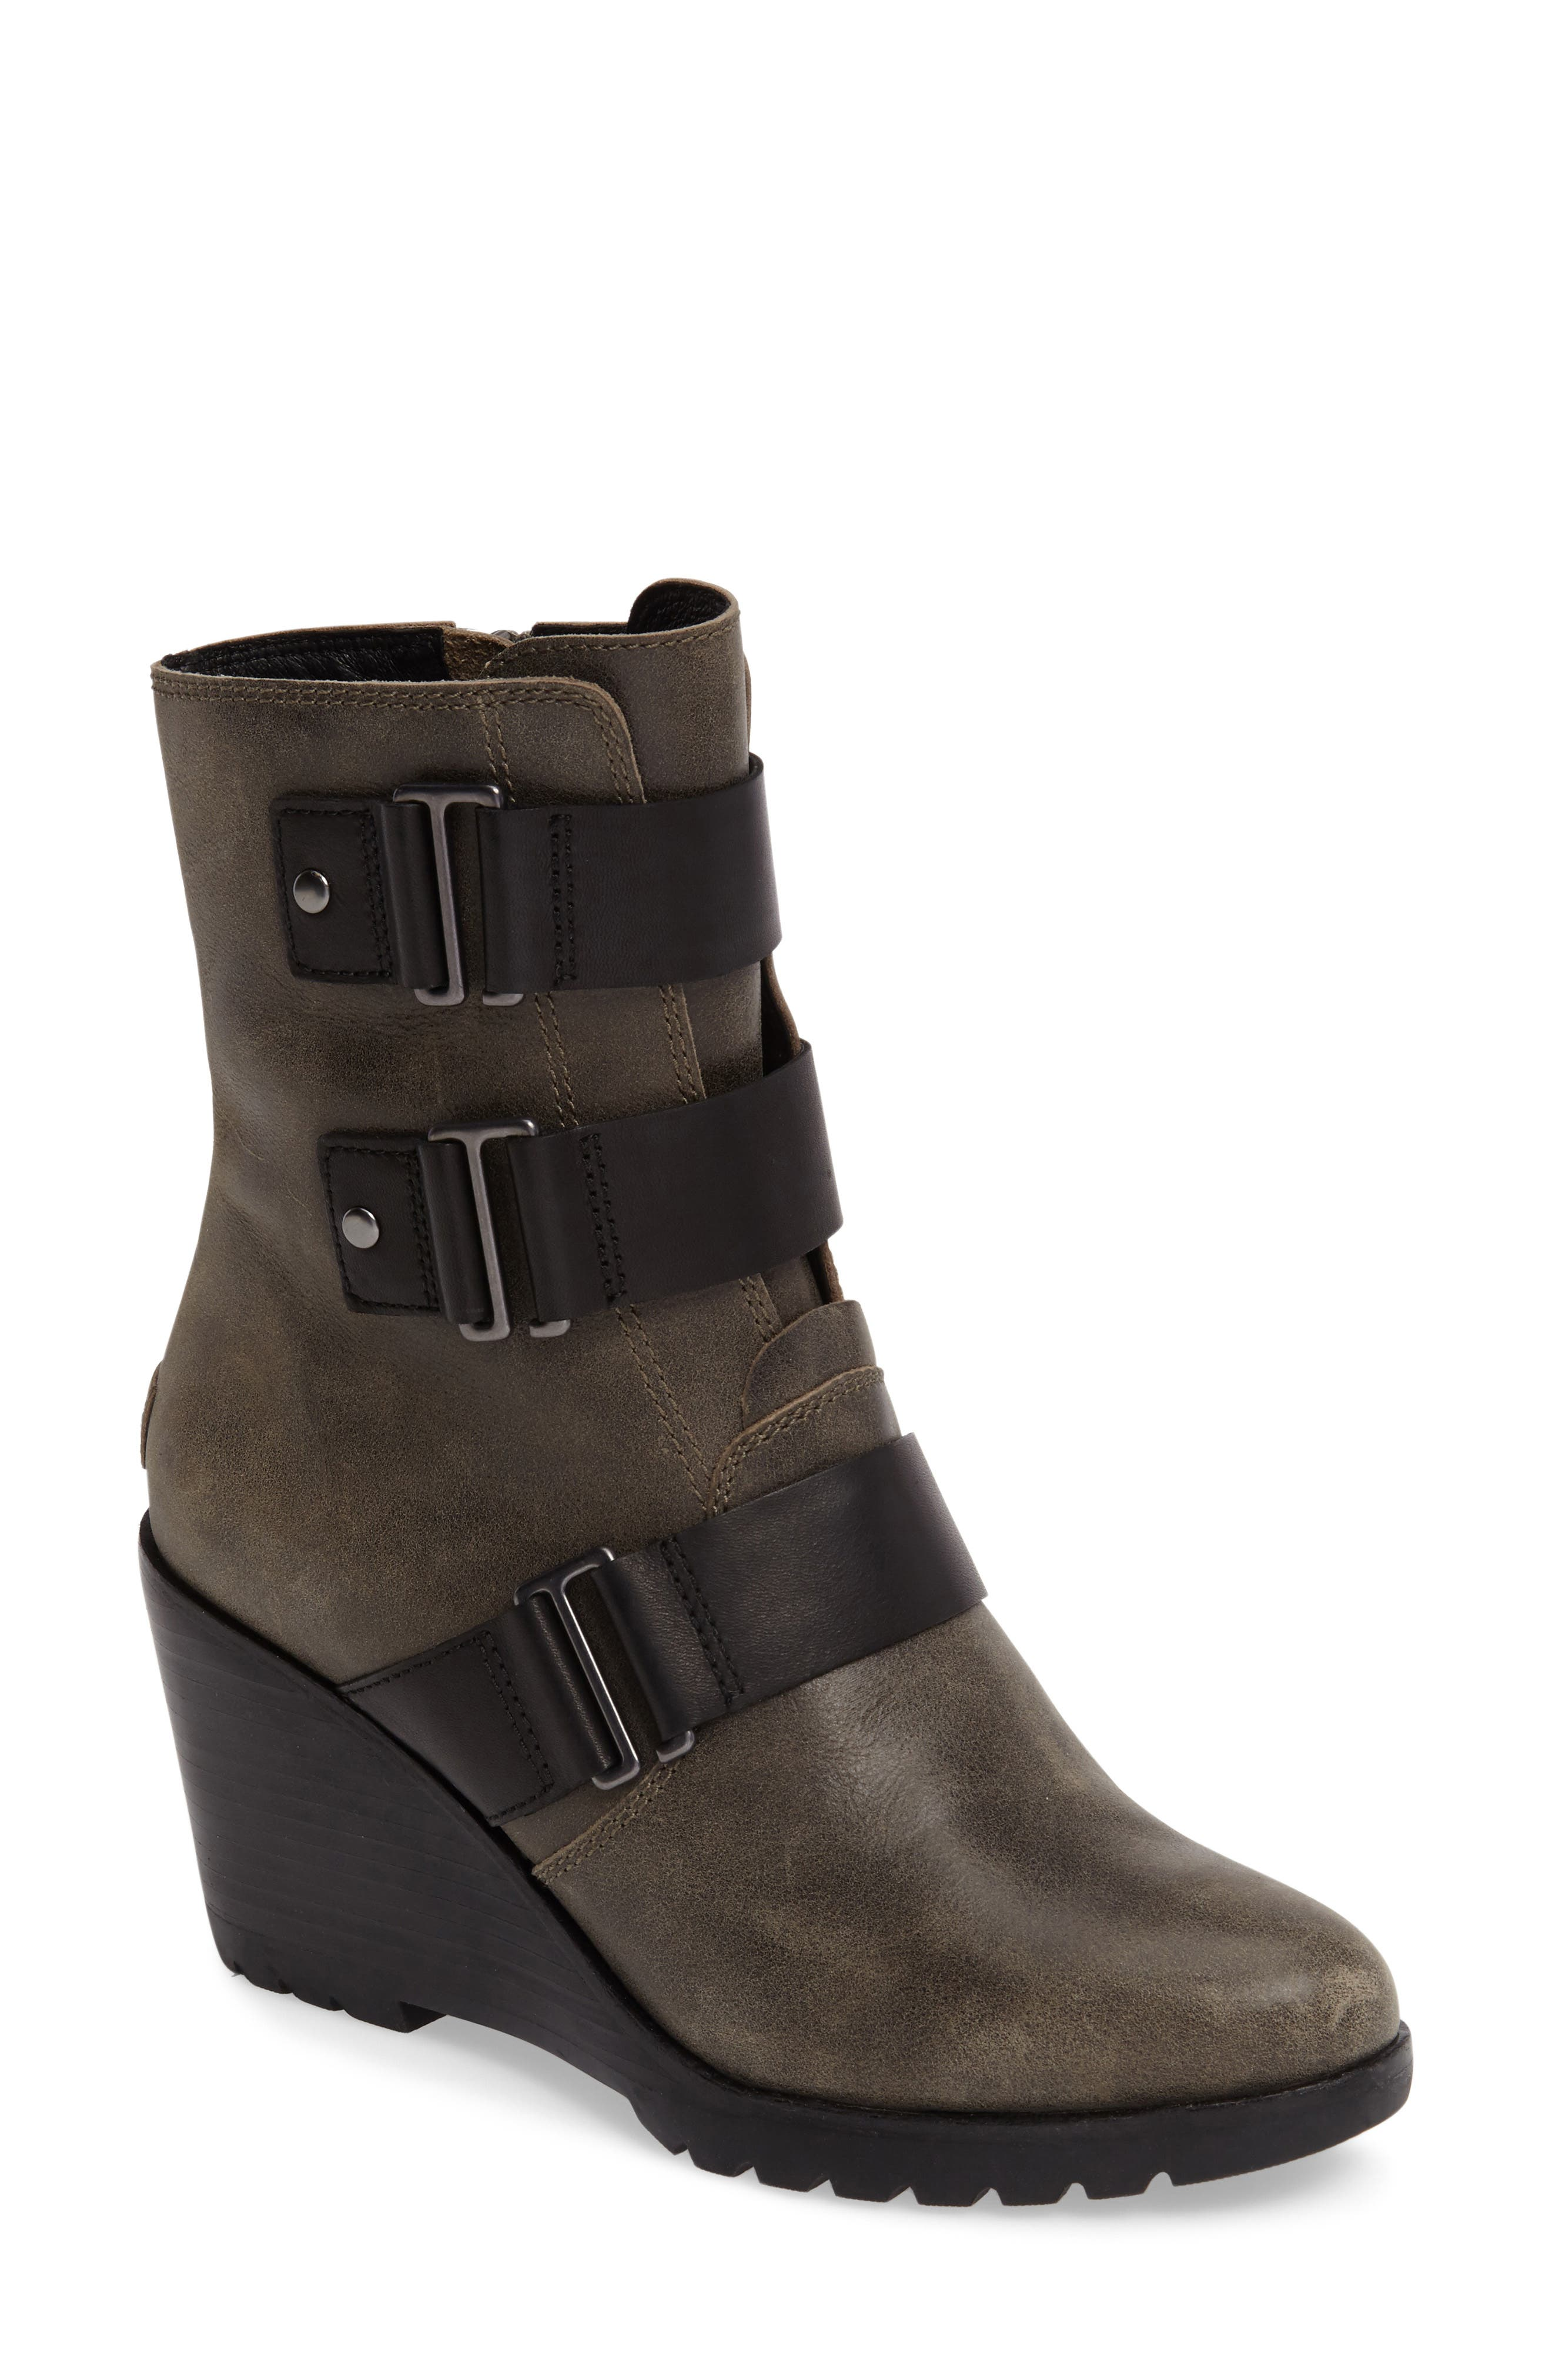 After Hours Waterproof Bootie,                         Main,                         color,